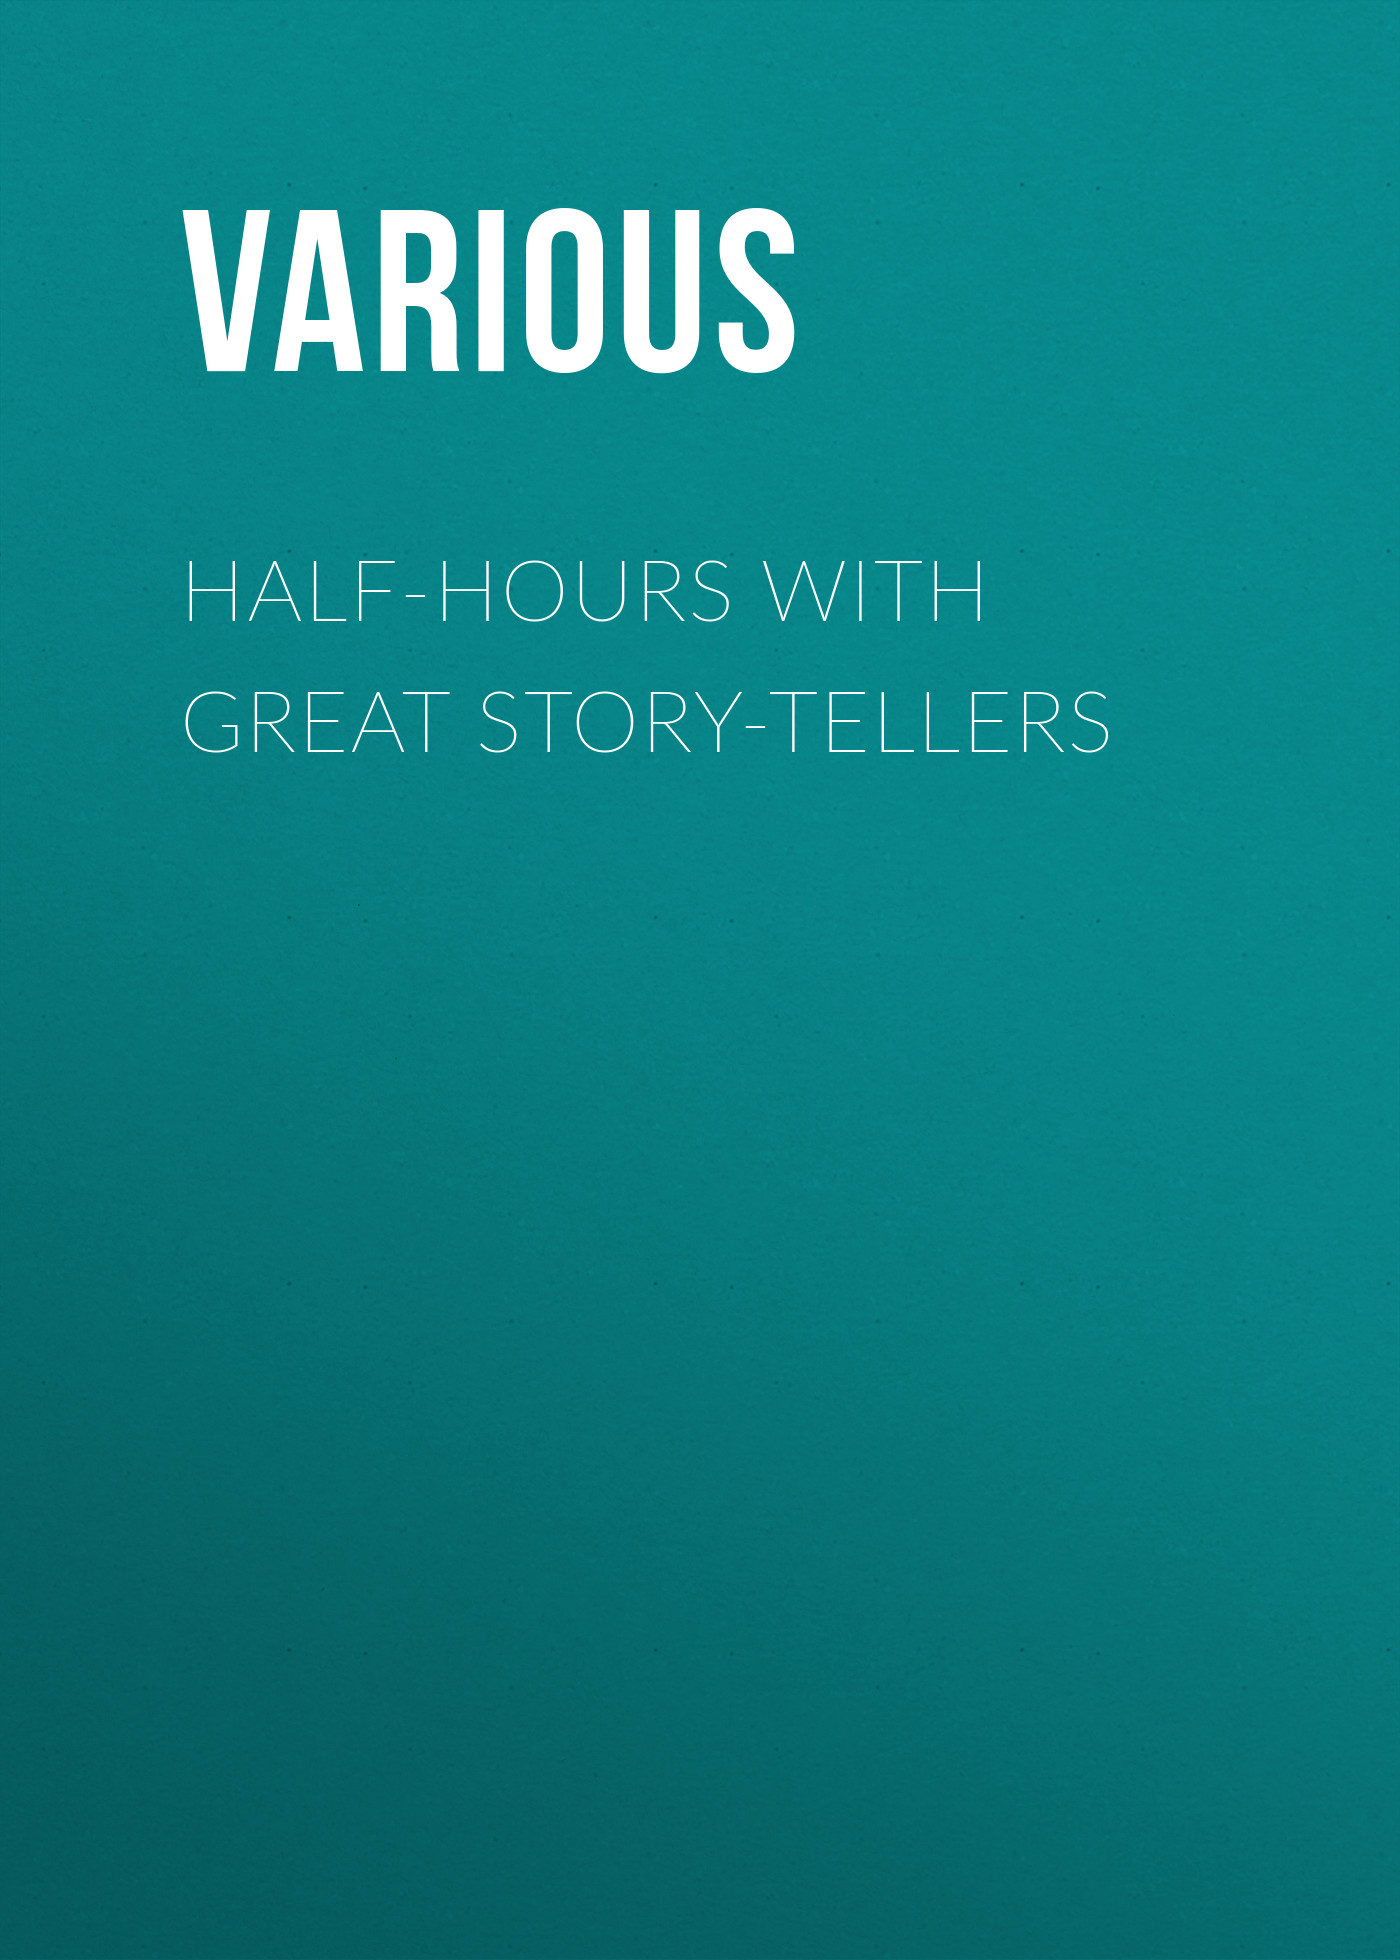 Various Half-Hours with Great Story-Tellers various half hours with great story tellers